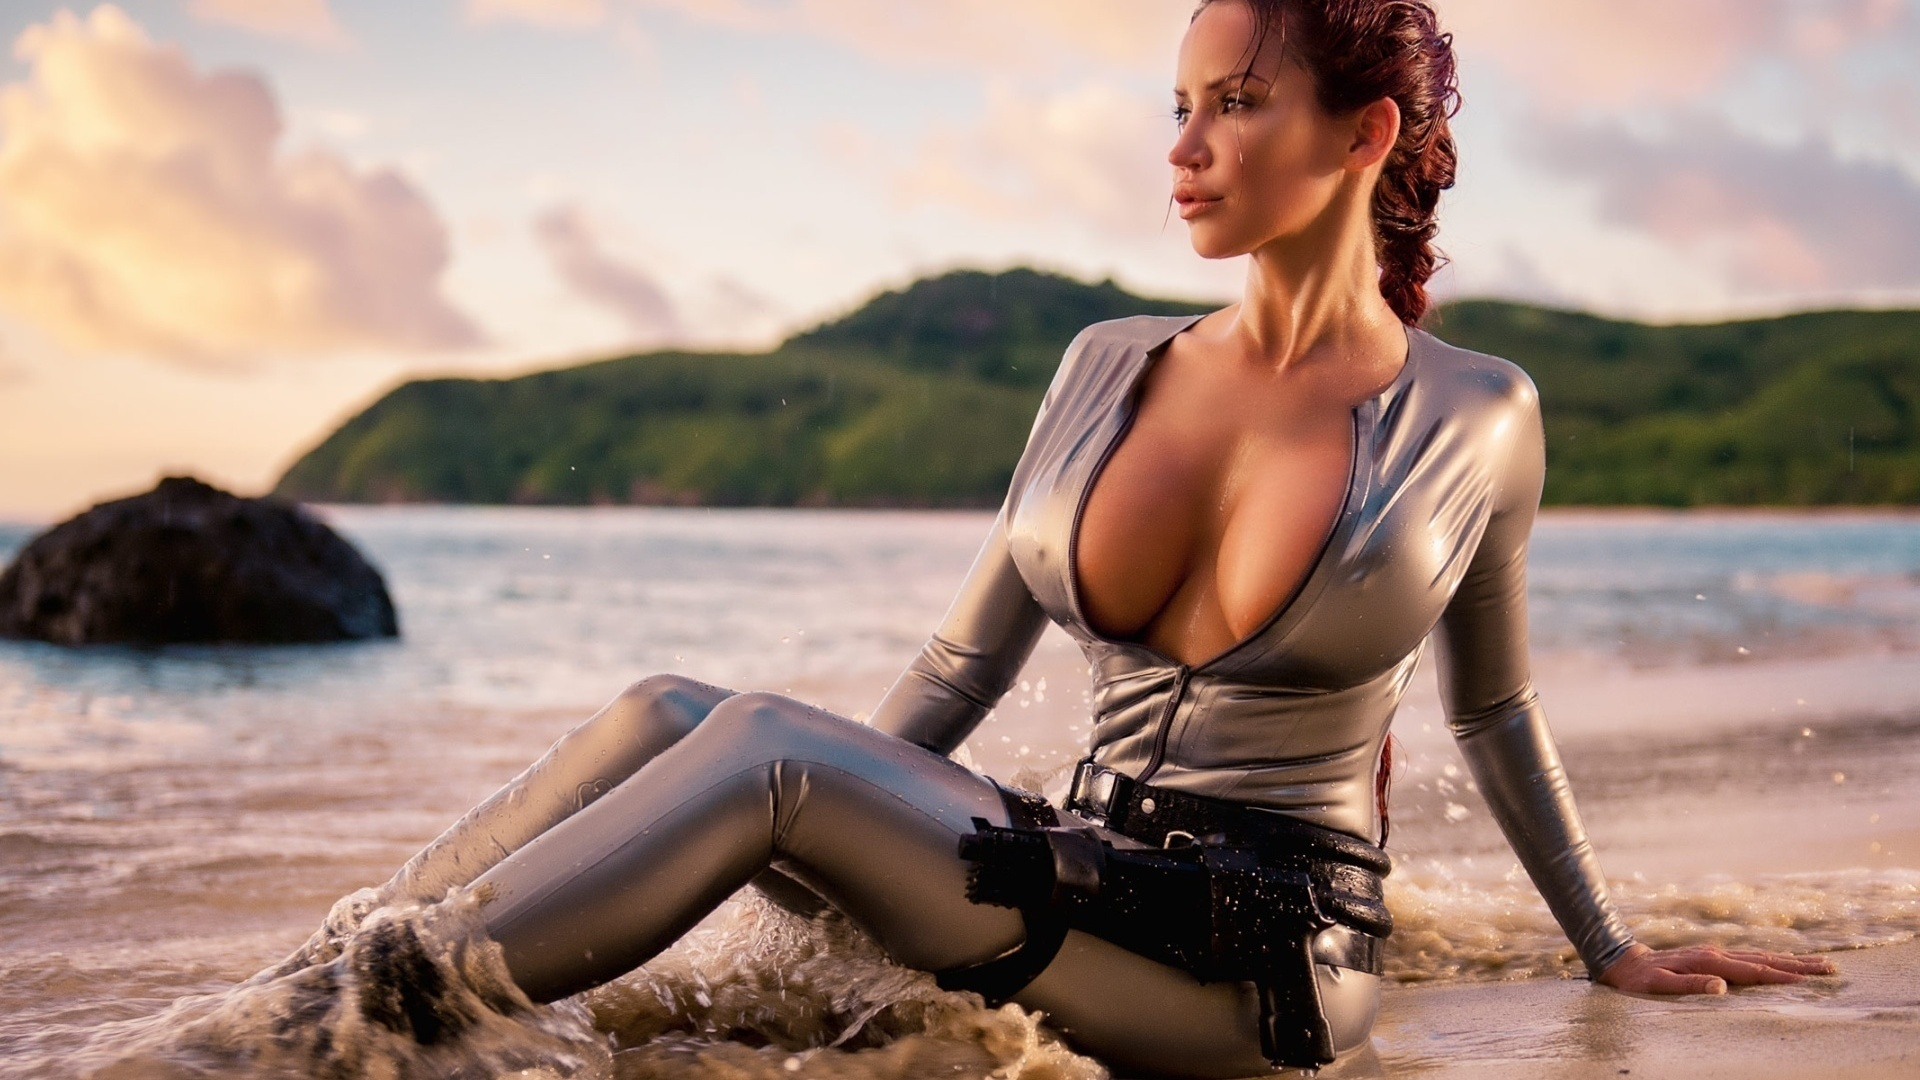 Lara croft big boobs naked pictures cartoon erotic video